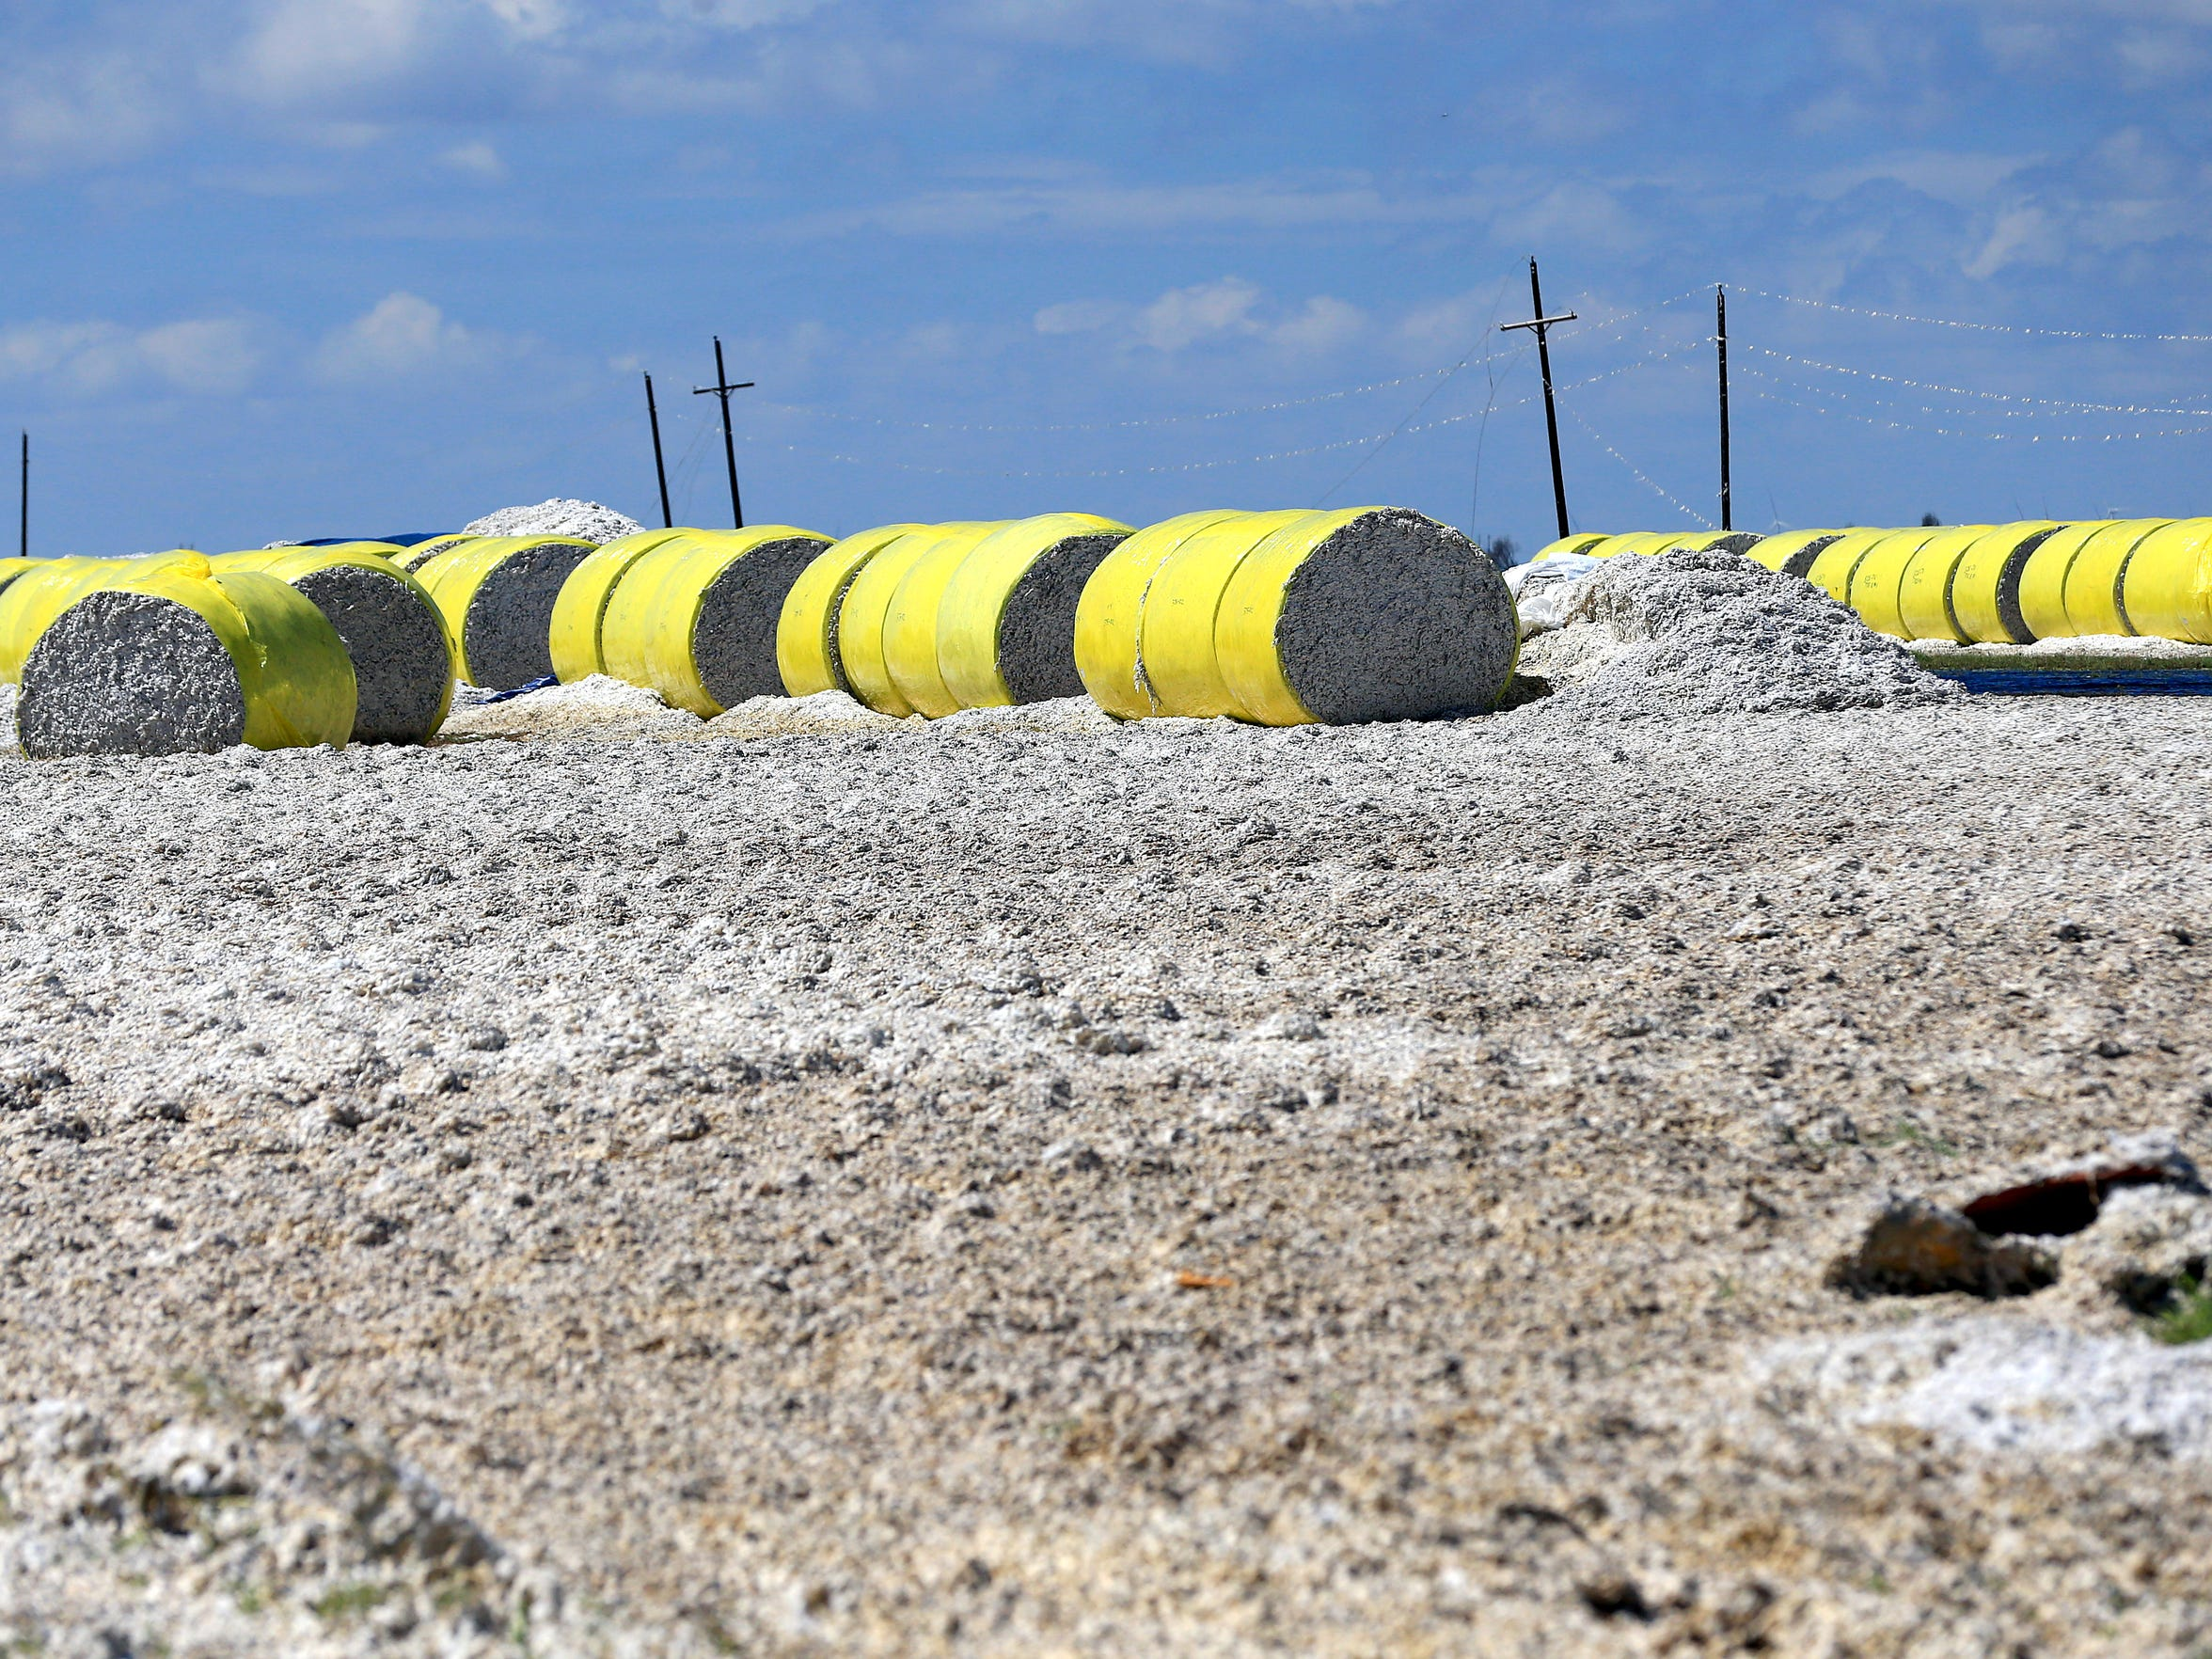 Cotton covers the land after Hurricane Harvey damaged